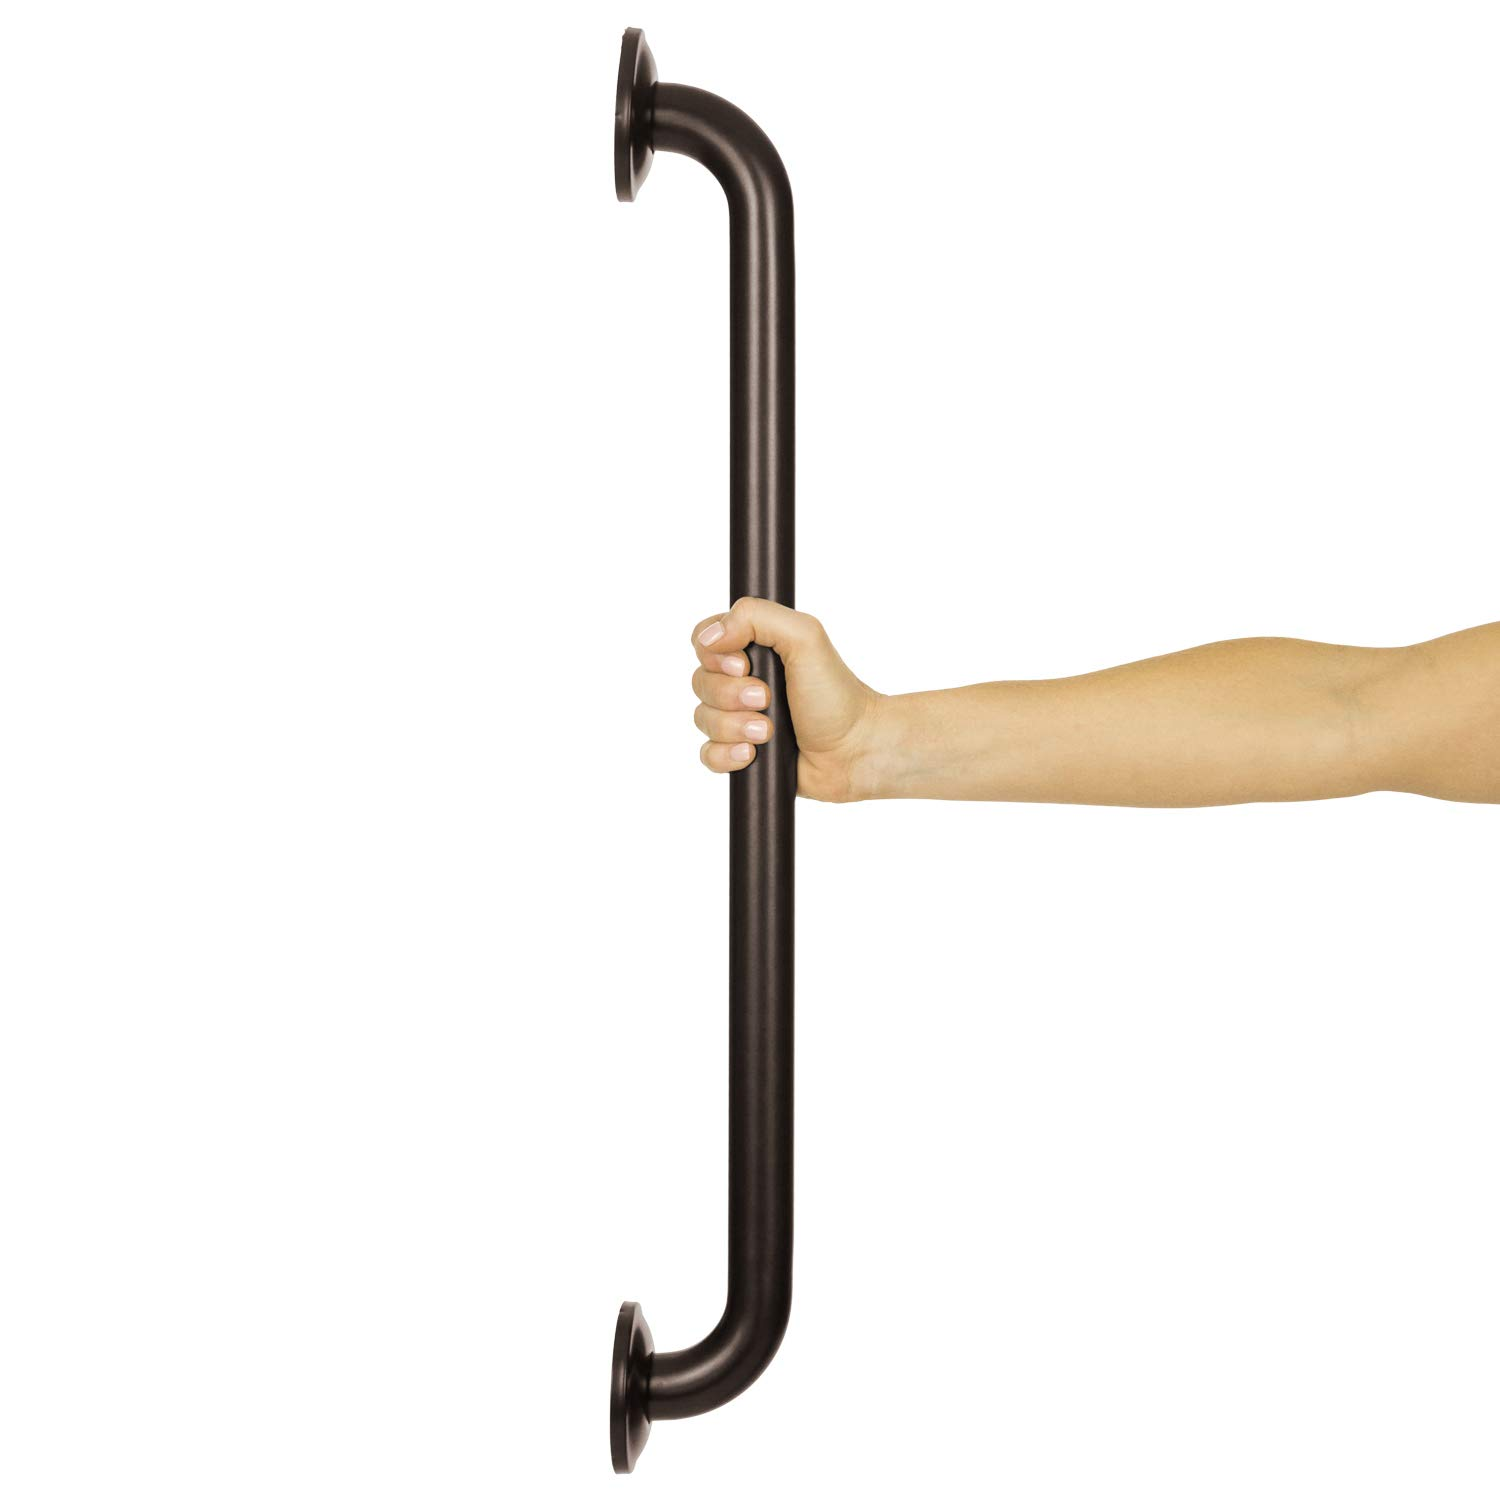 Vive Metal Grab Bar - Balance Handrail Shower Assist - Bathroom, Bathtub Mounted Safety Hand Support Rail - Stainless Steel Wall Mount for Handicap, Bath Handle, Elderly, Disabled, Injury (24 Inch)